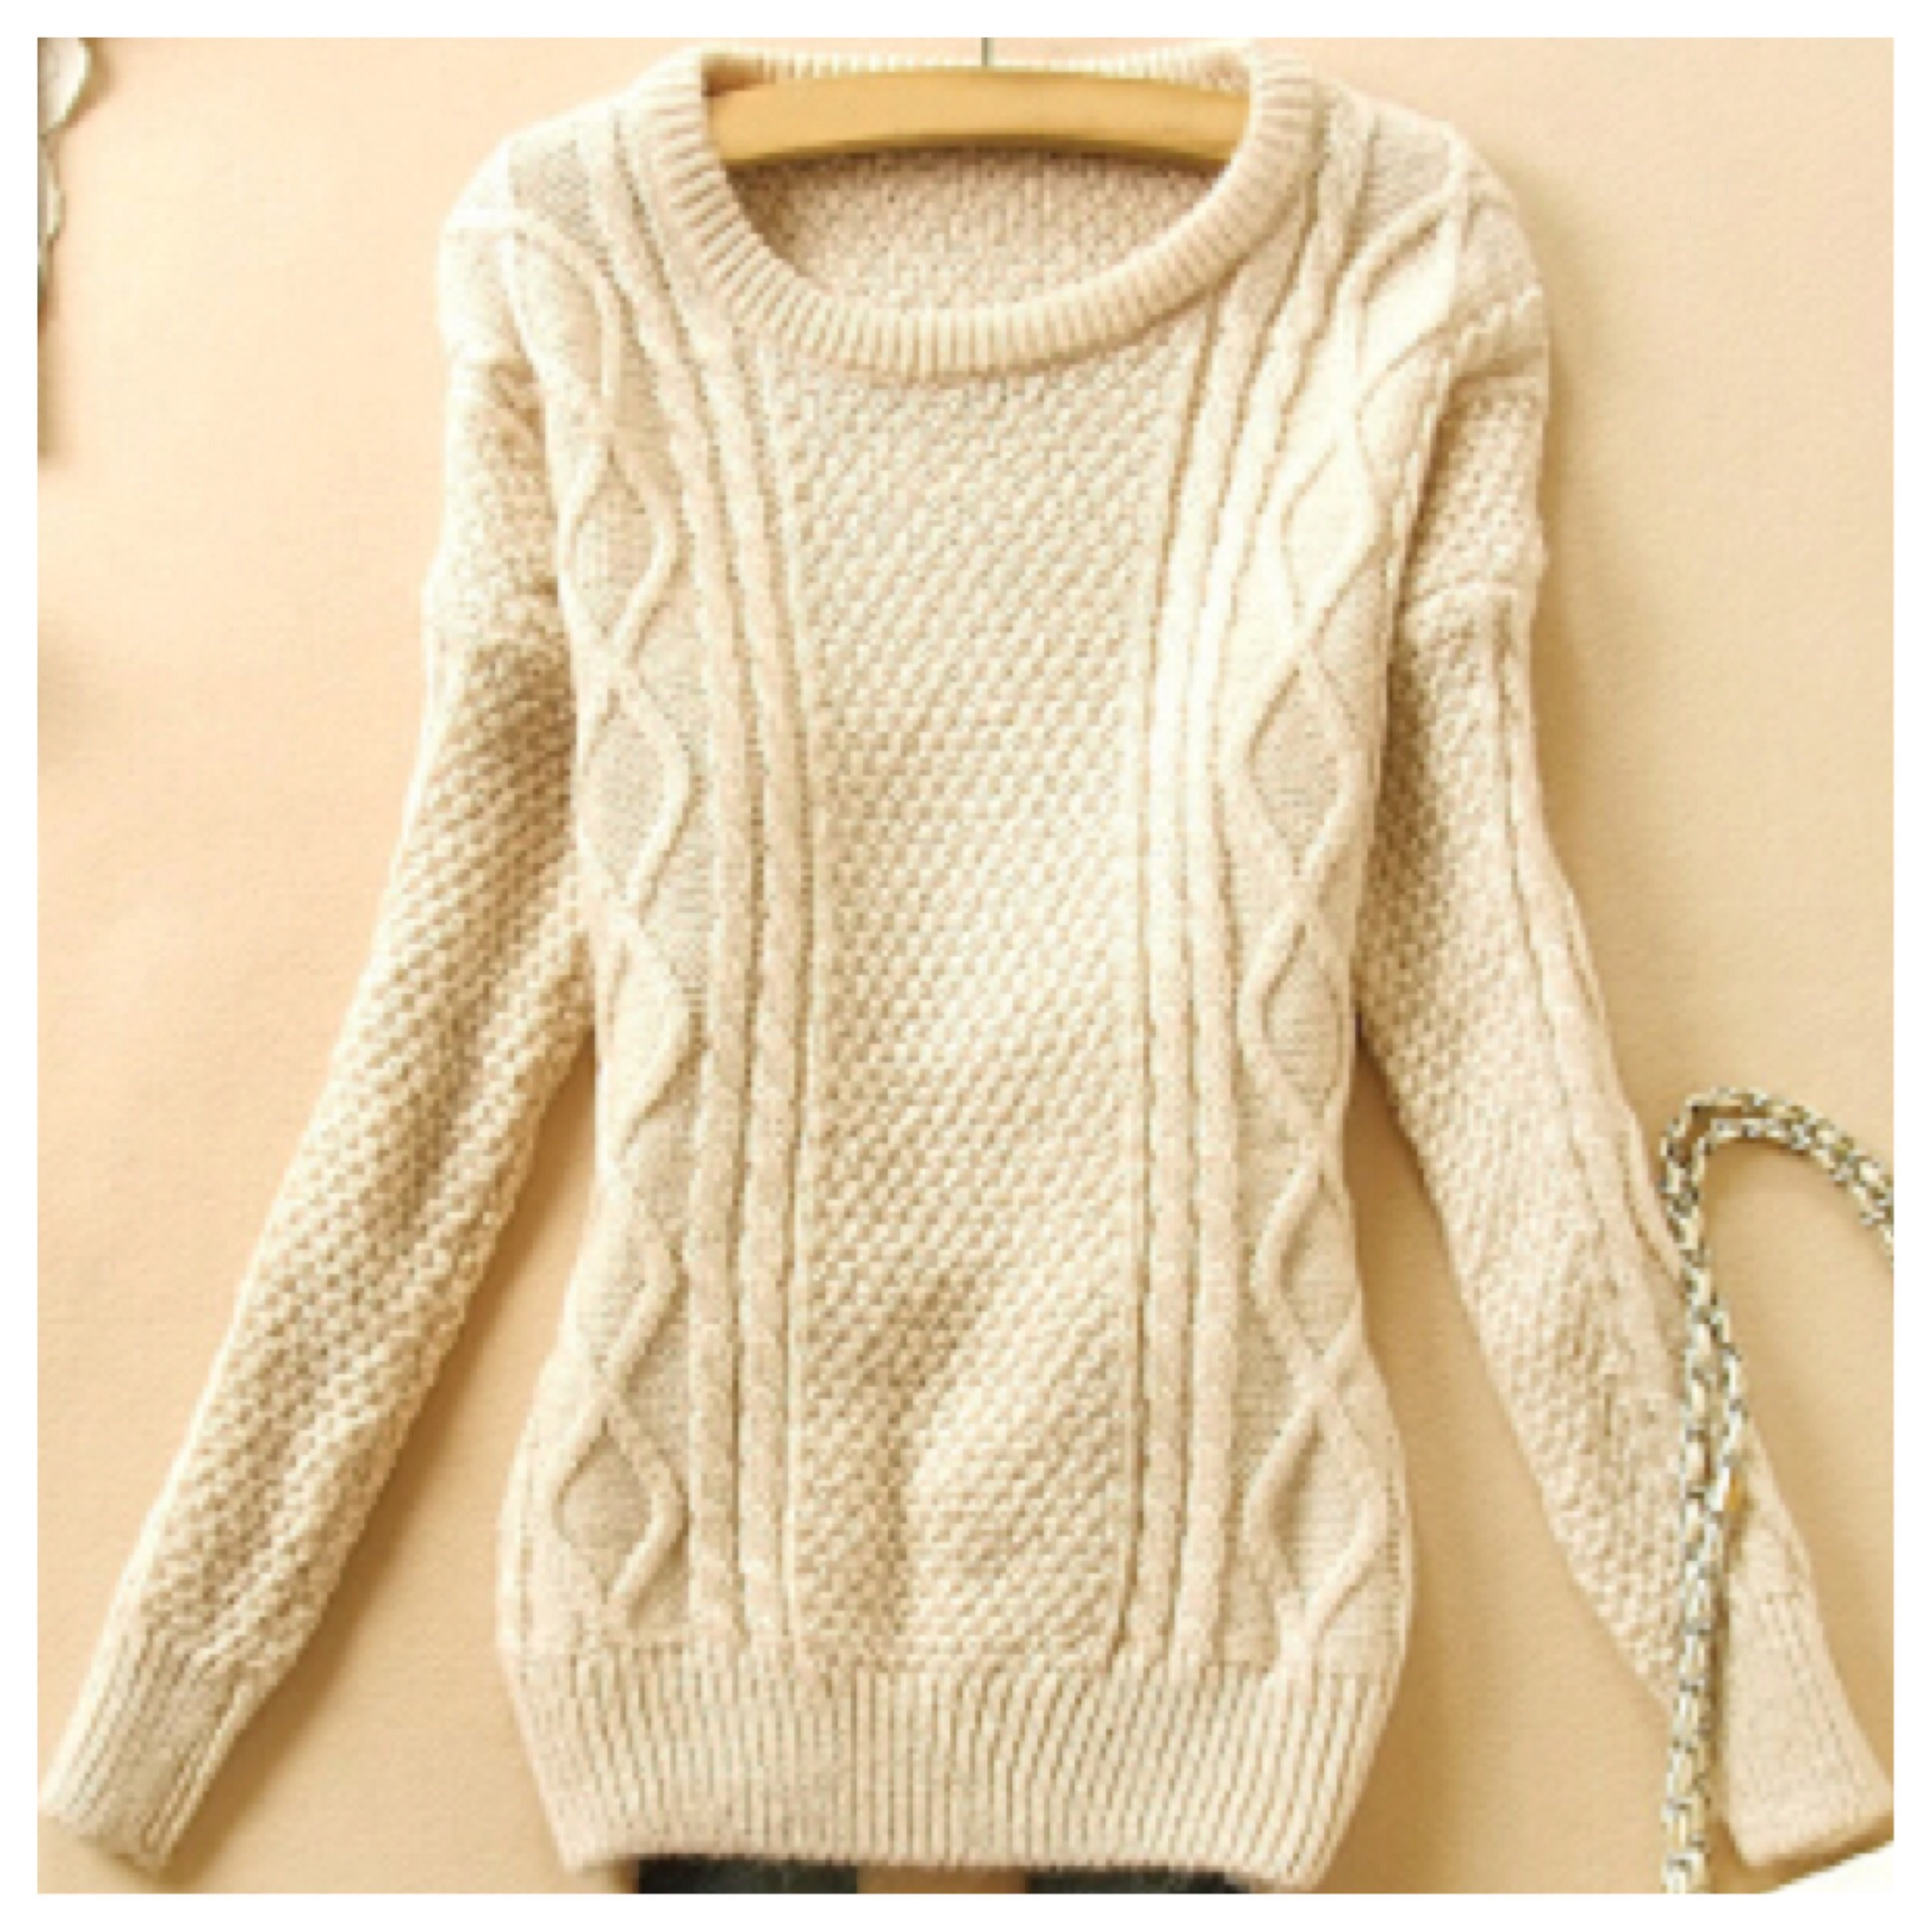 Cute cable knit sweater from doublelw on storenvy